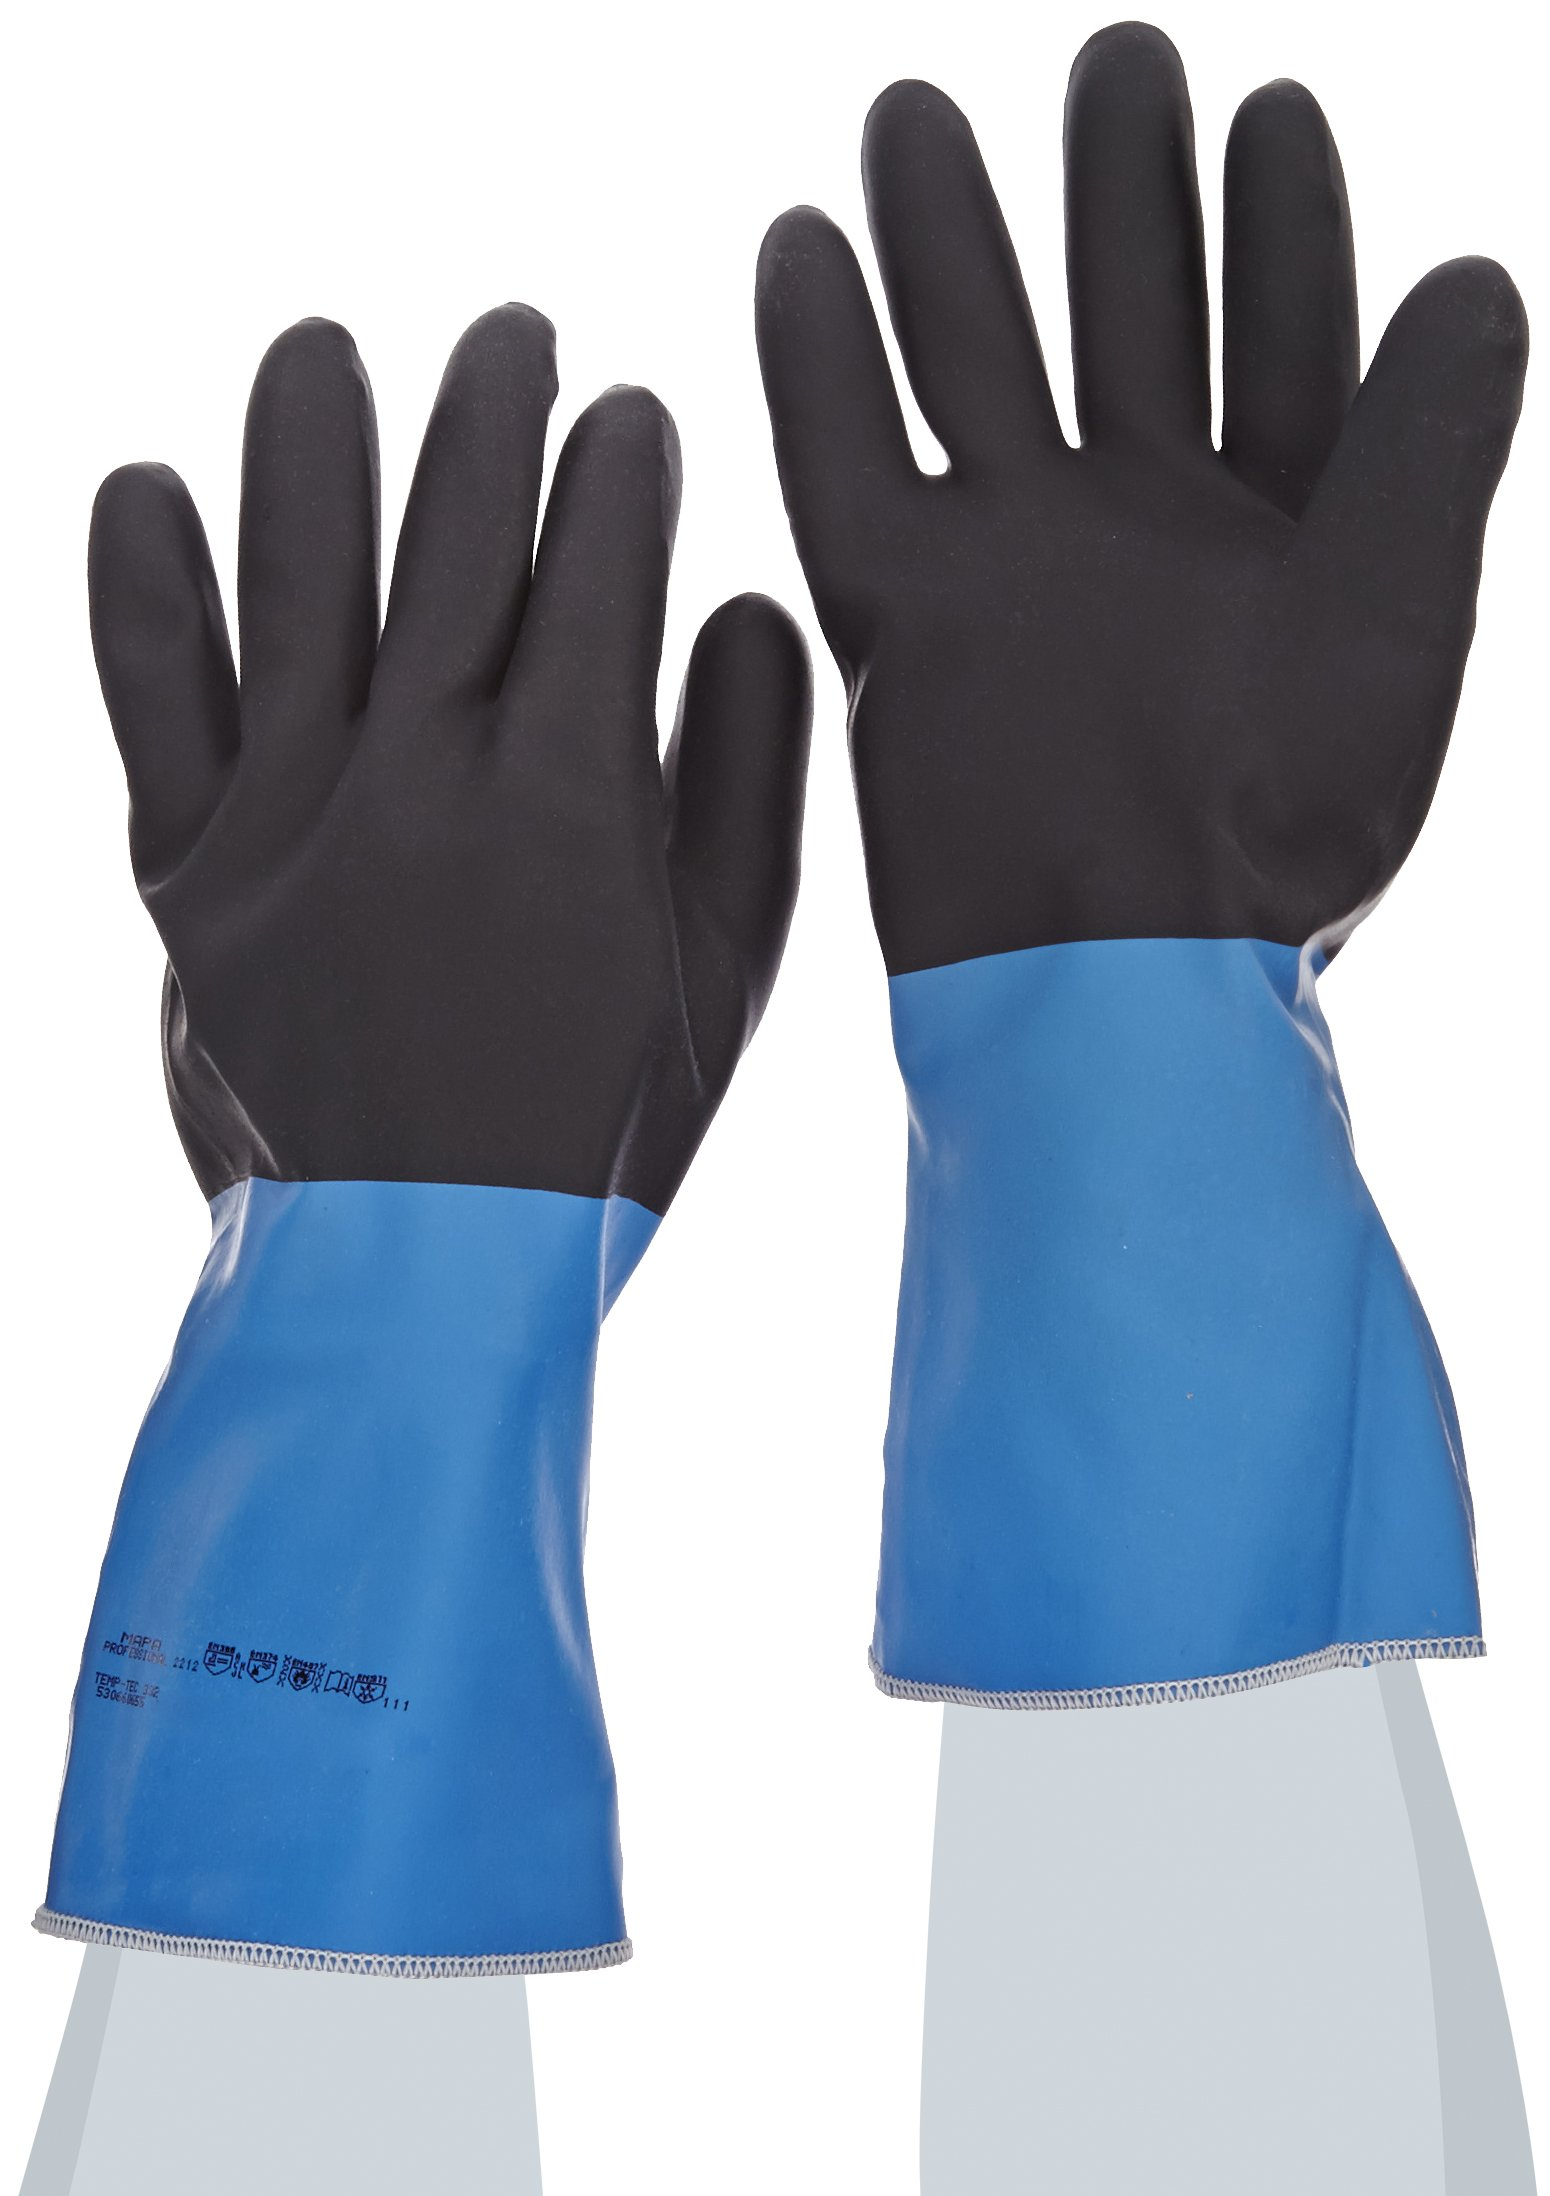 MAPA Temp-Tec NL-56 Neoprene Thermal Insulation Heavyweight Glove, Chemical Resistant, 14'' Length, Size 9, Blue/Black (Case of 6 Pairs) by MAPA Professional (Image #1)